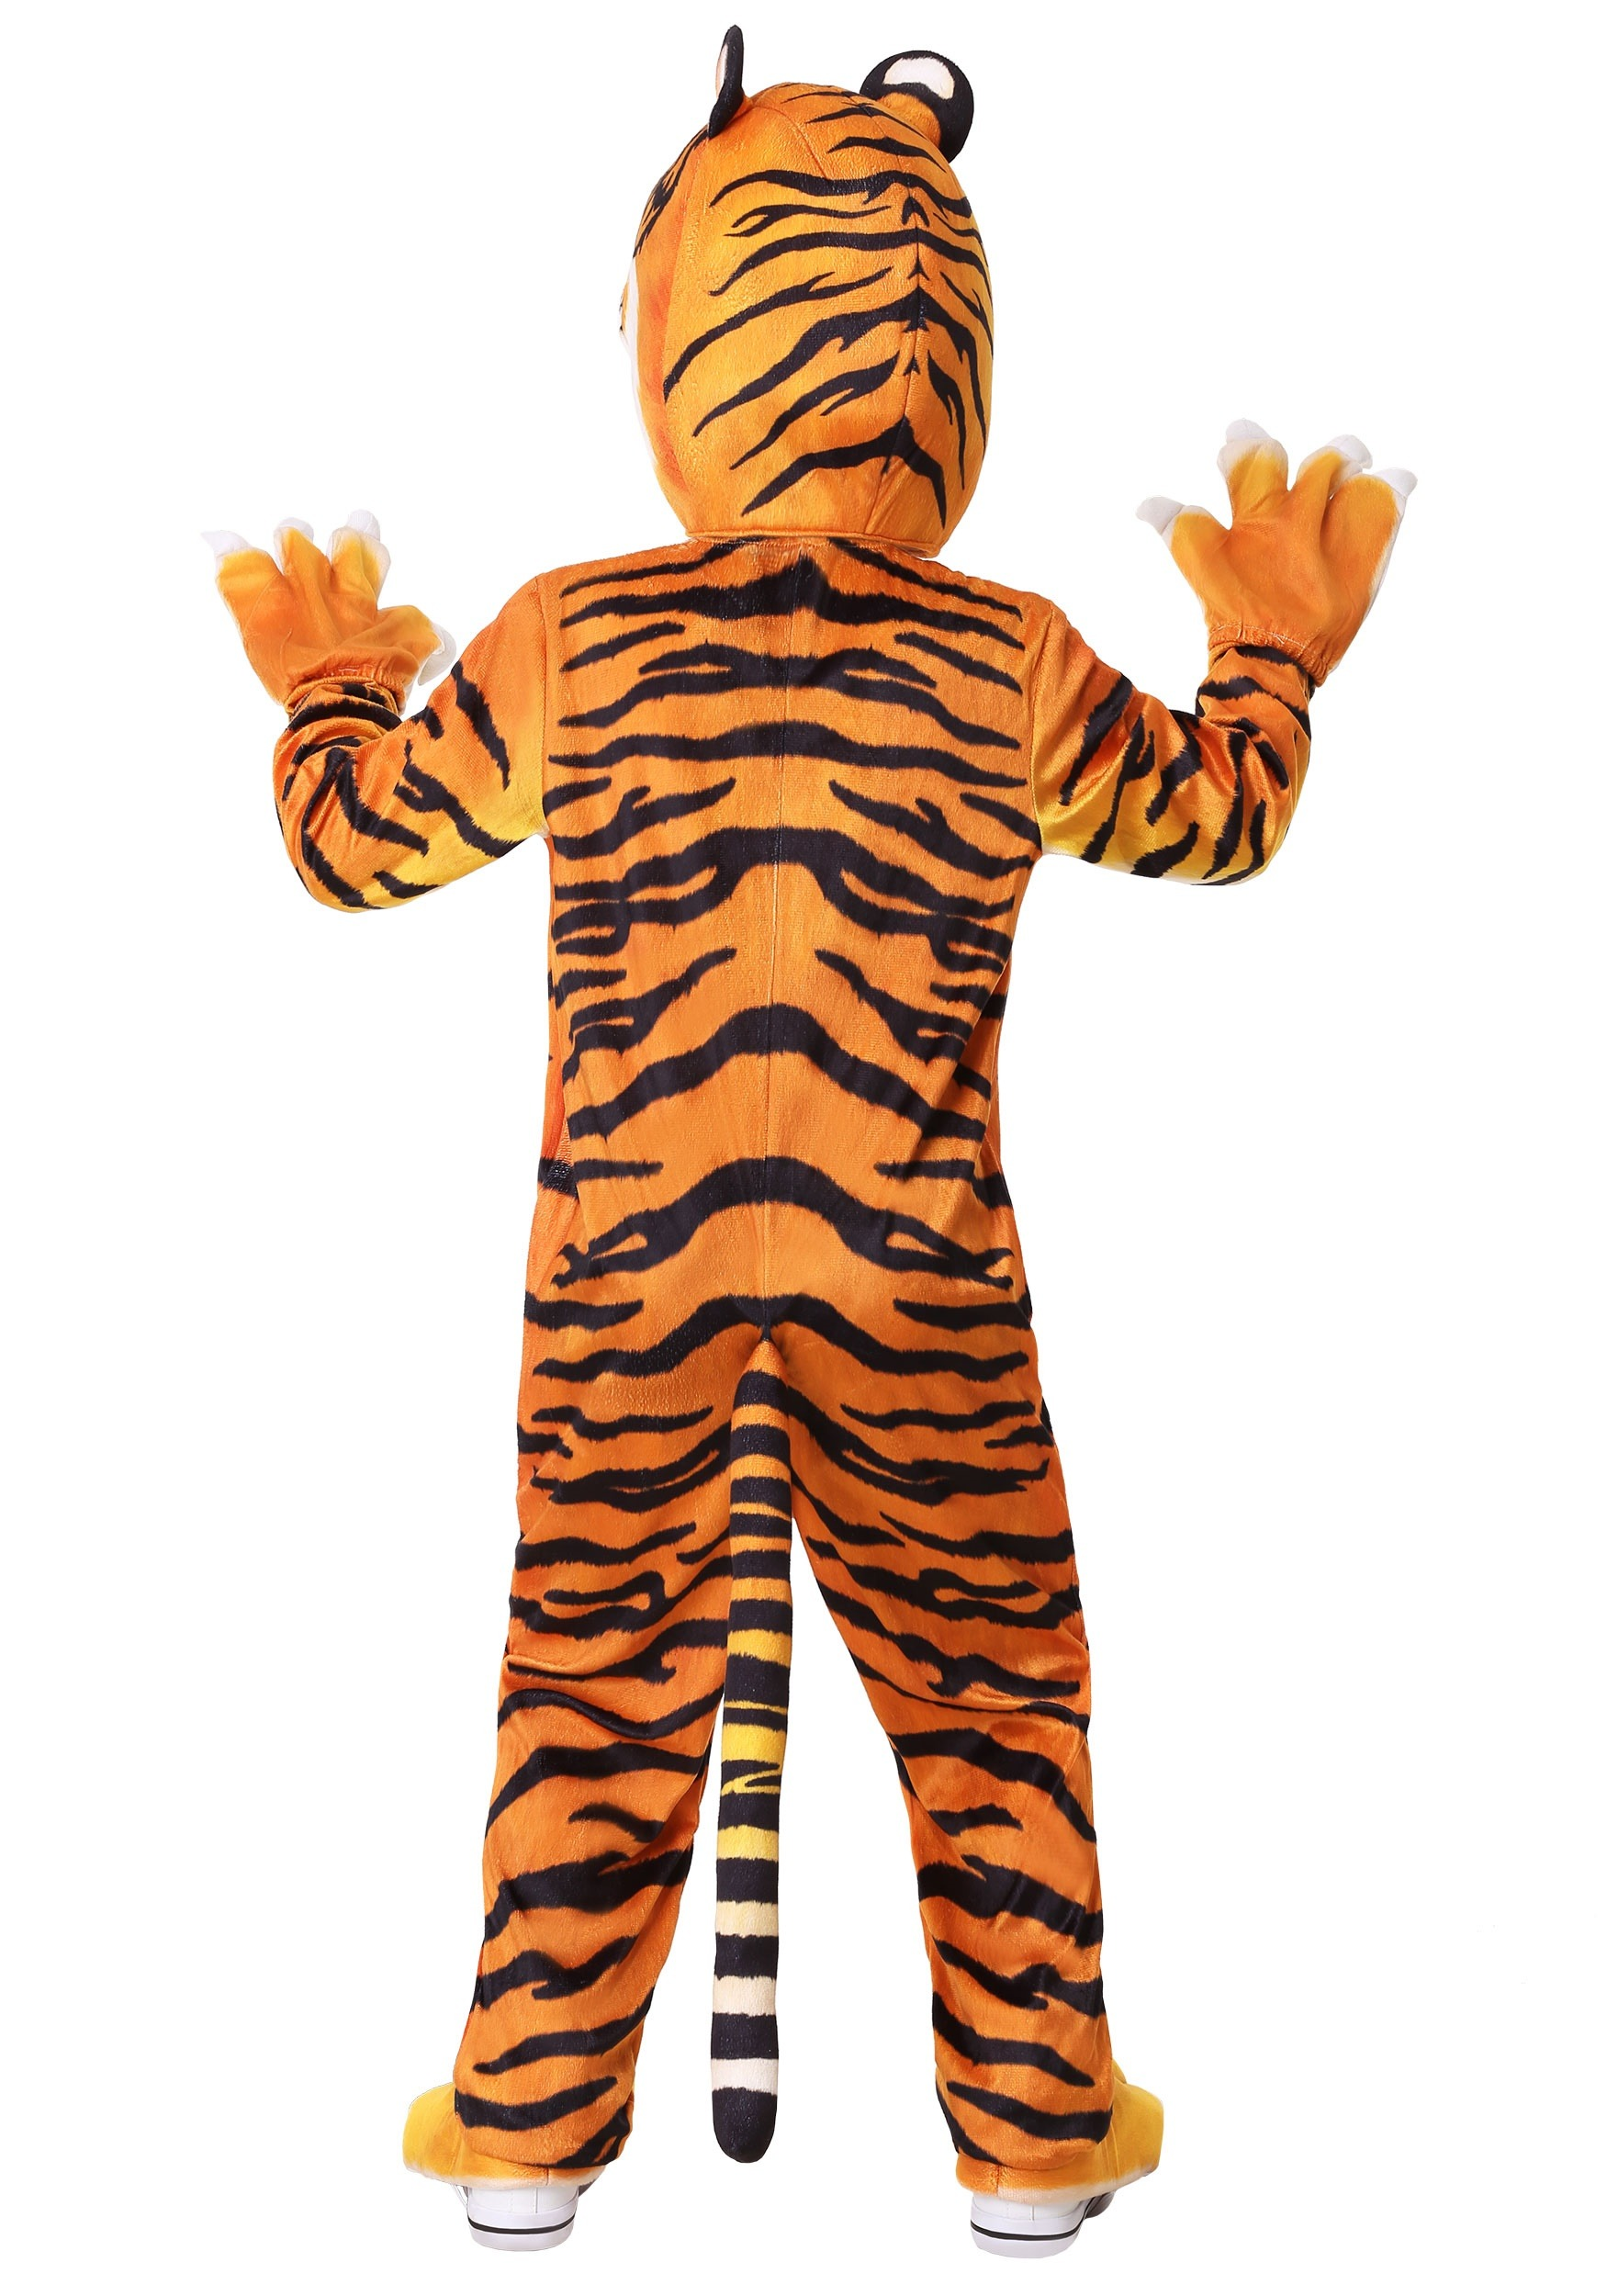 Child Realistic Tiger CostumeRealistic Tiger Costume